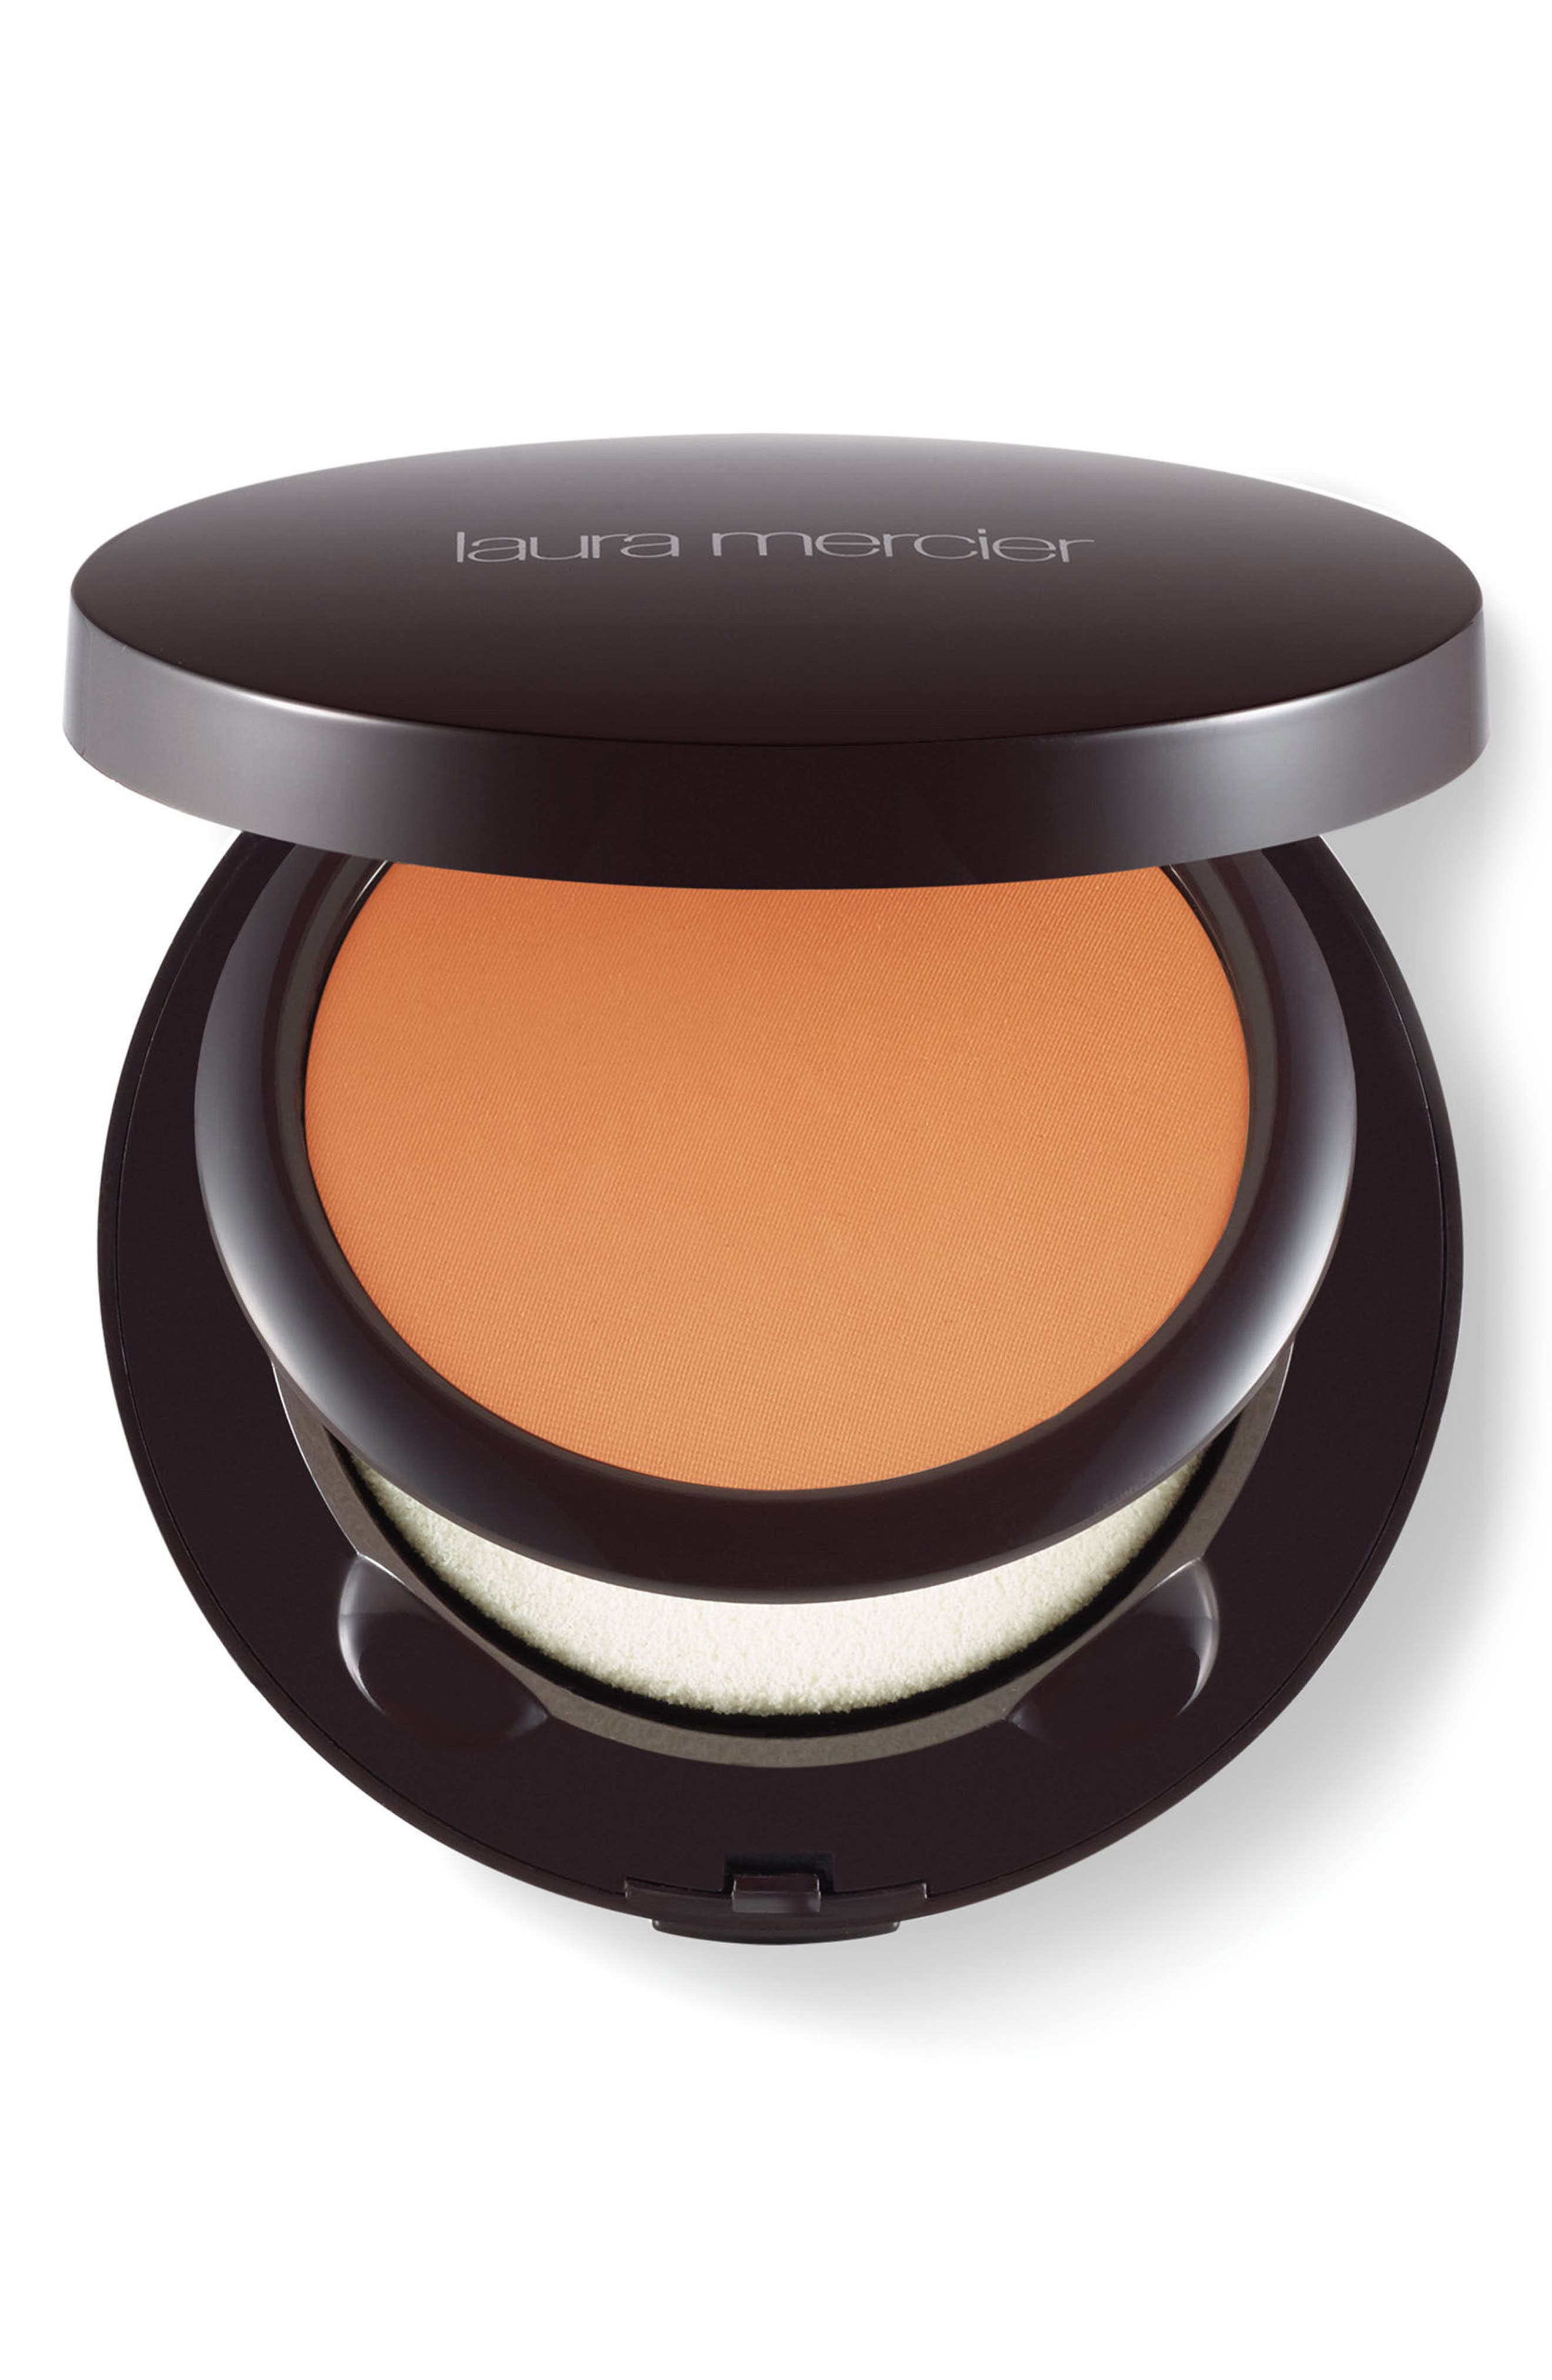 Alternate Image 1 Selected - Laura Mercier Smooth Finish Foundation Powder